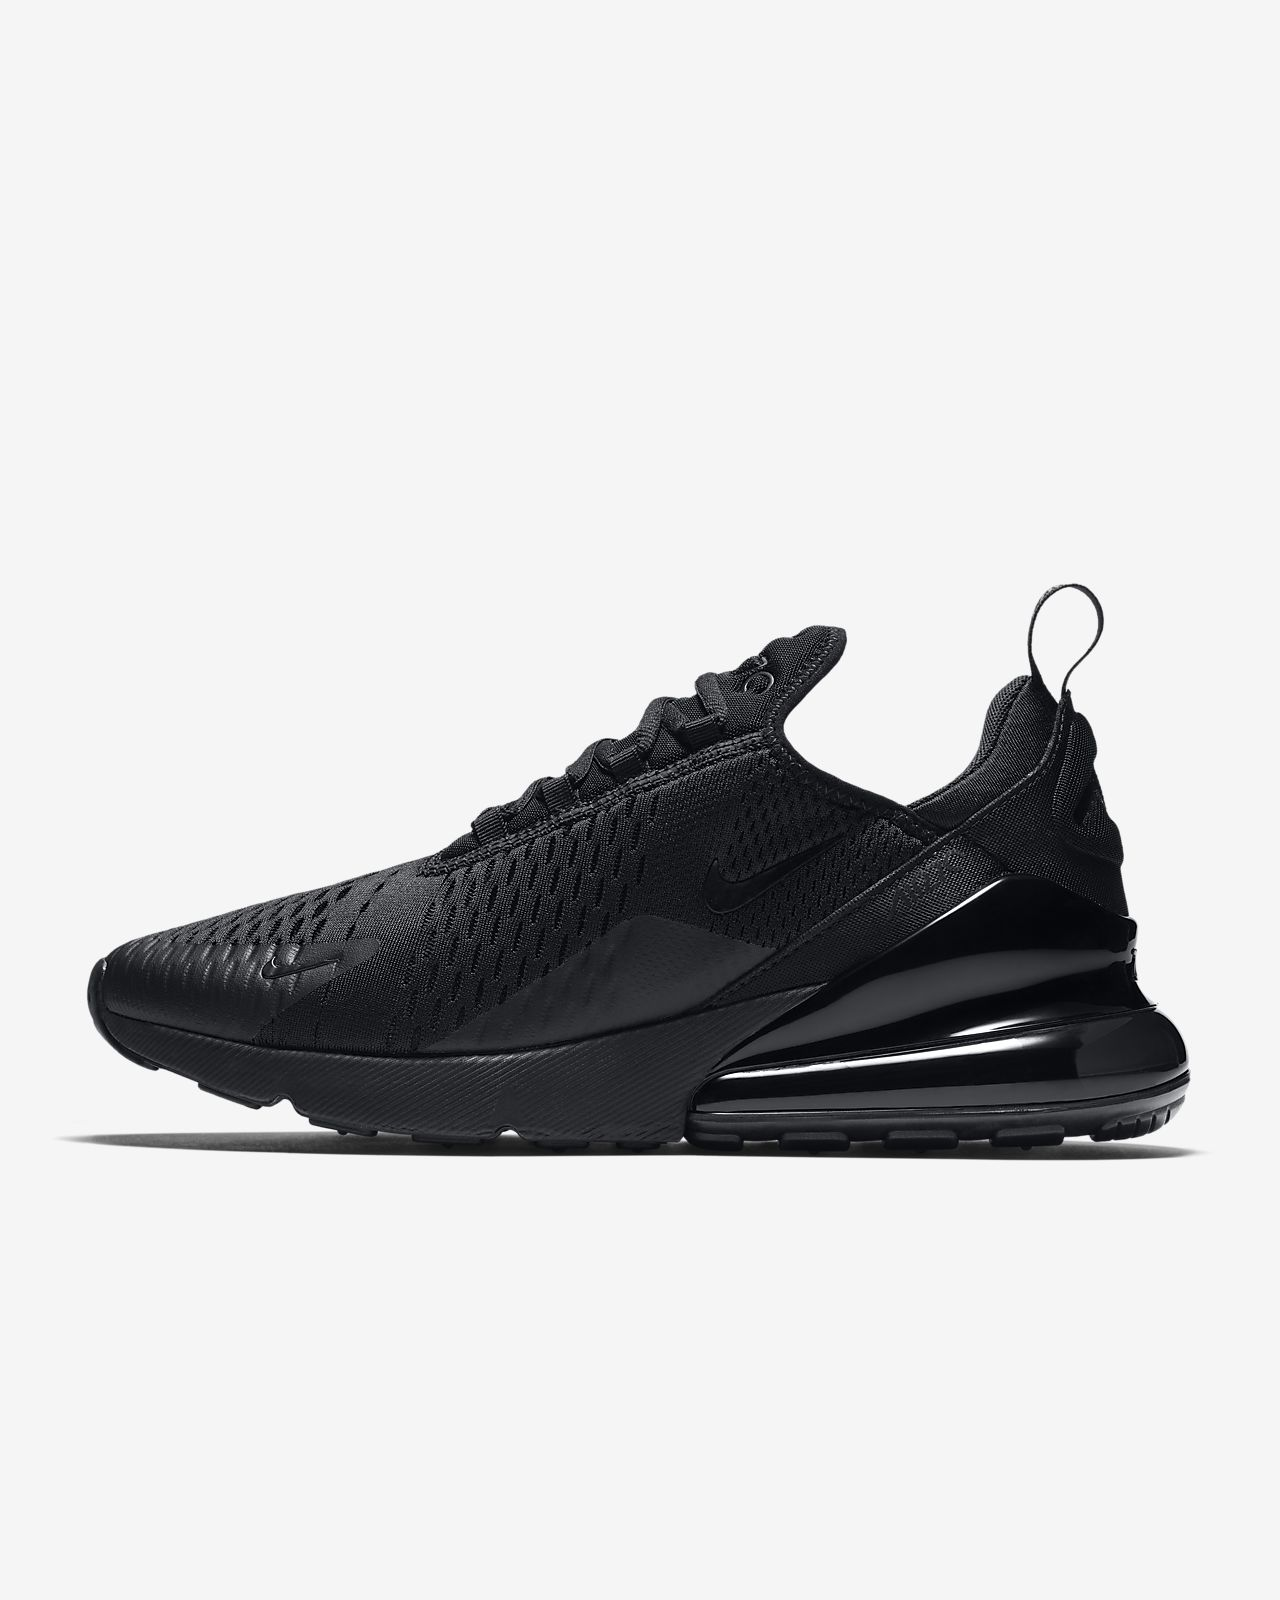 a885e65bf883 Nike Air Max 270 Men s Shoe. Nike.com CA